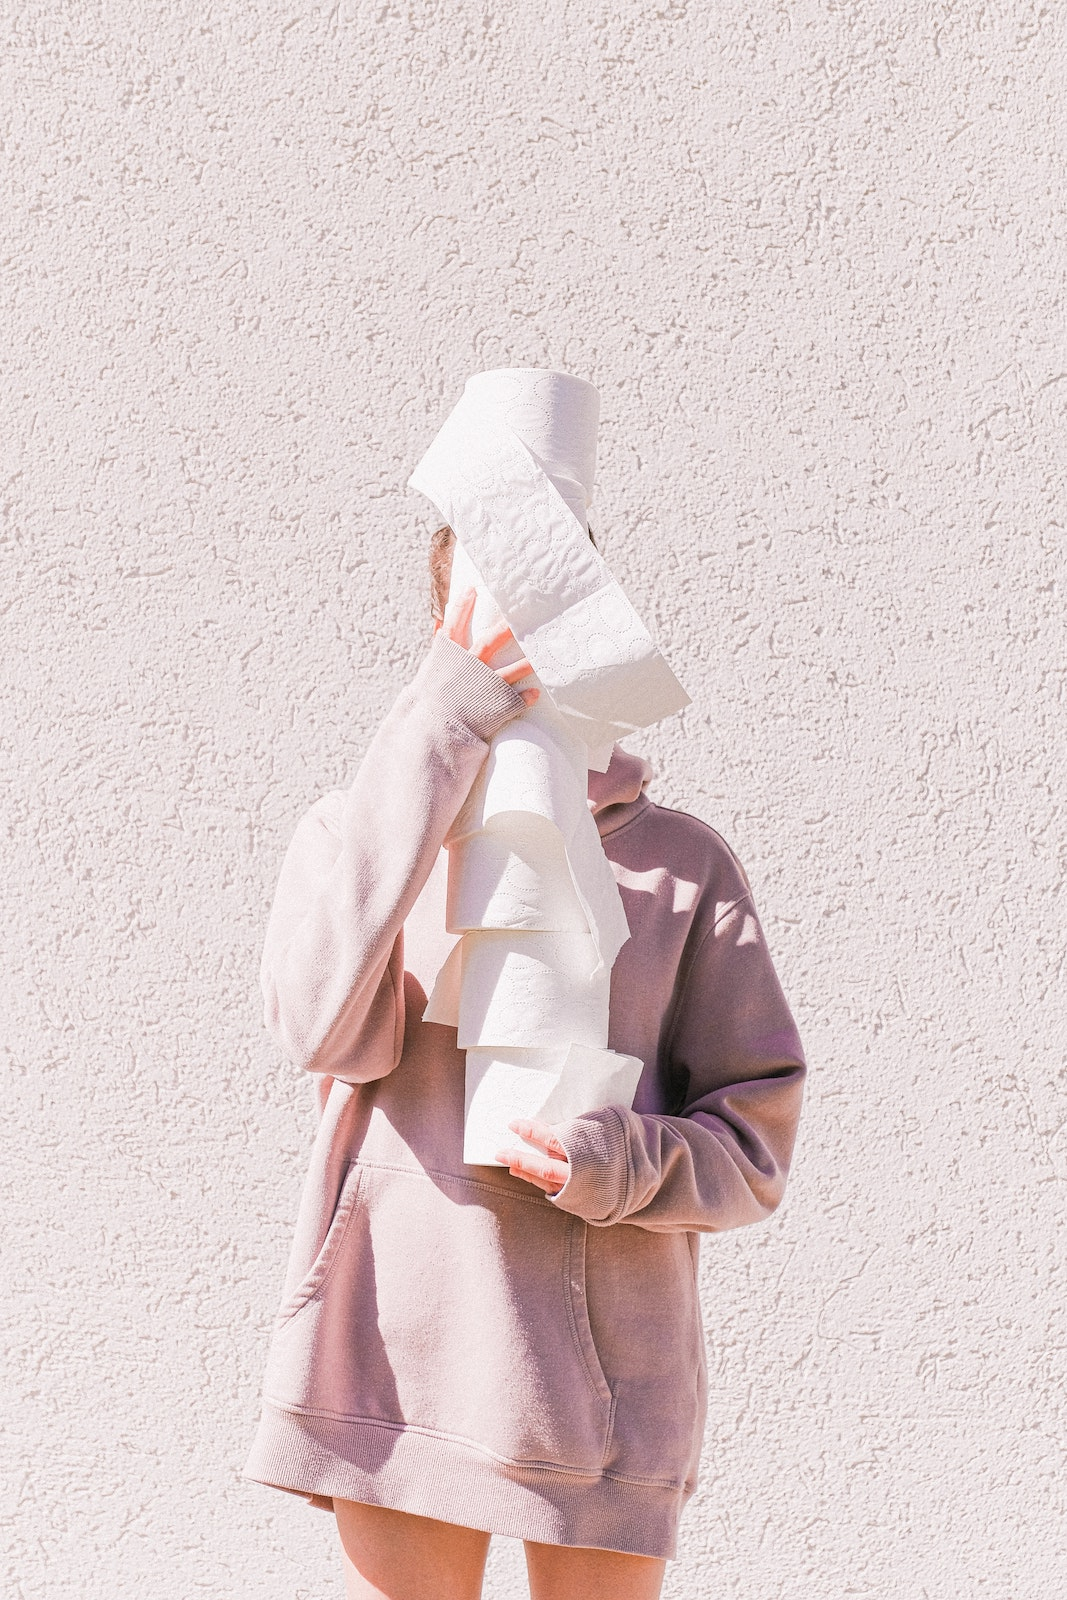 Person Carrying Tissue Rolls